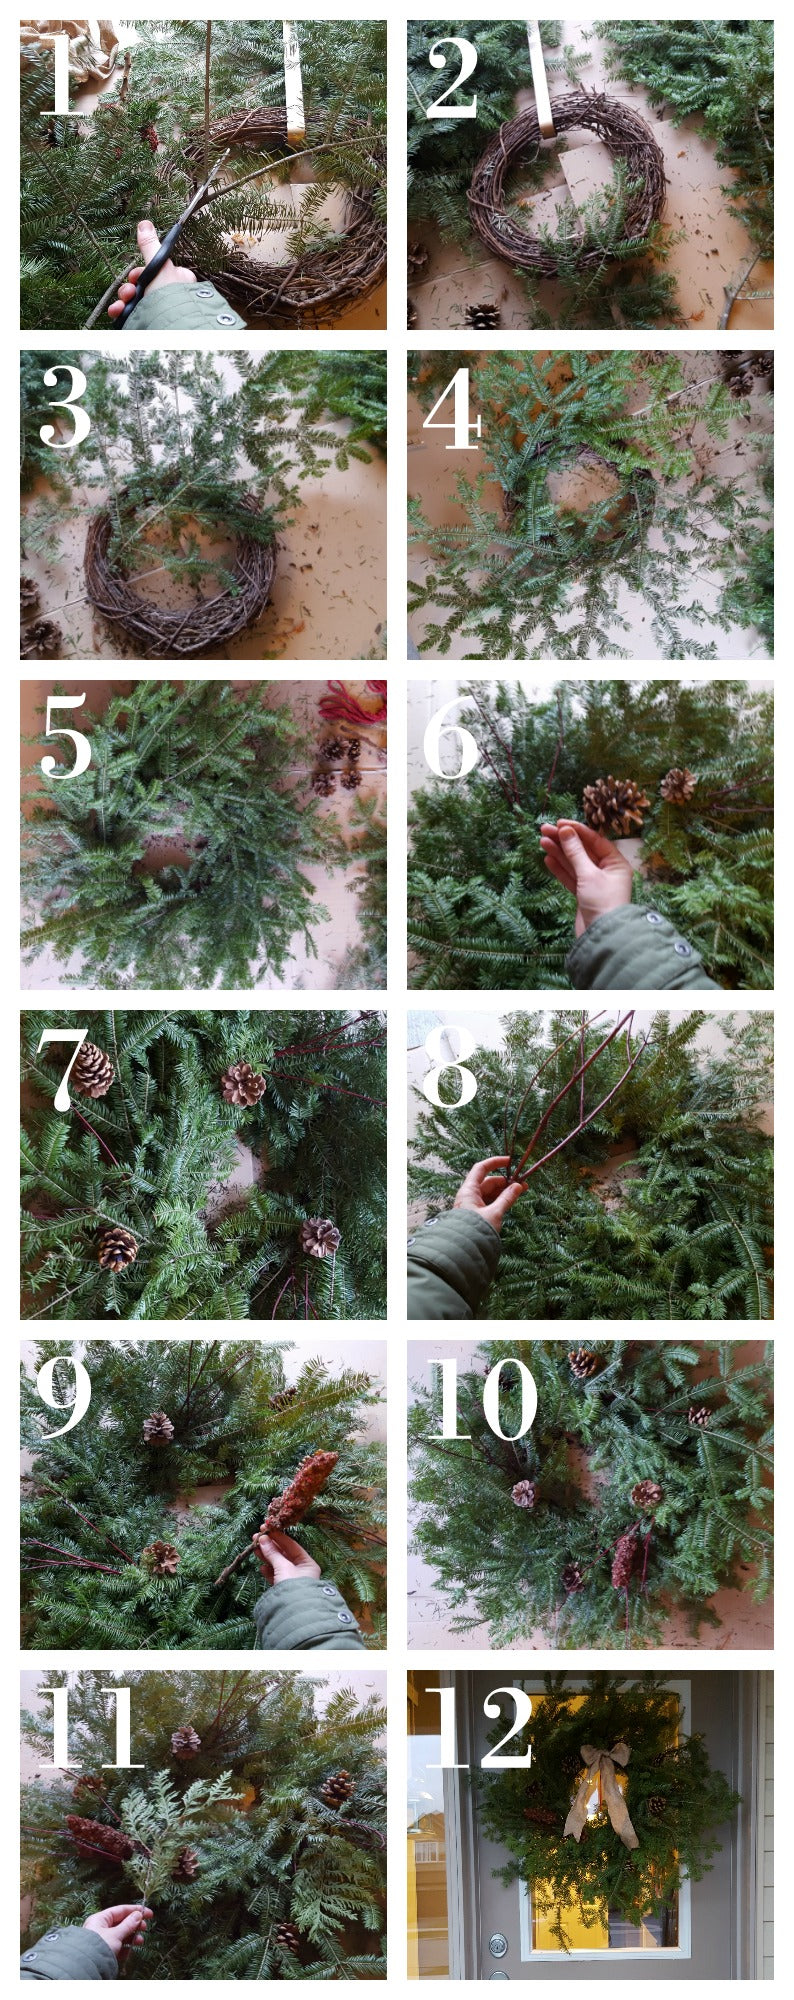 12 steps to make a natural Christmas wreath